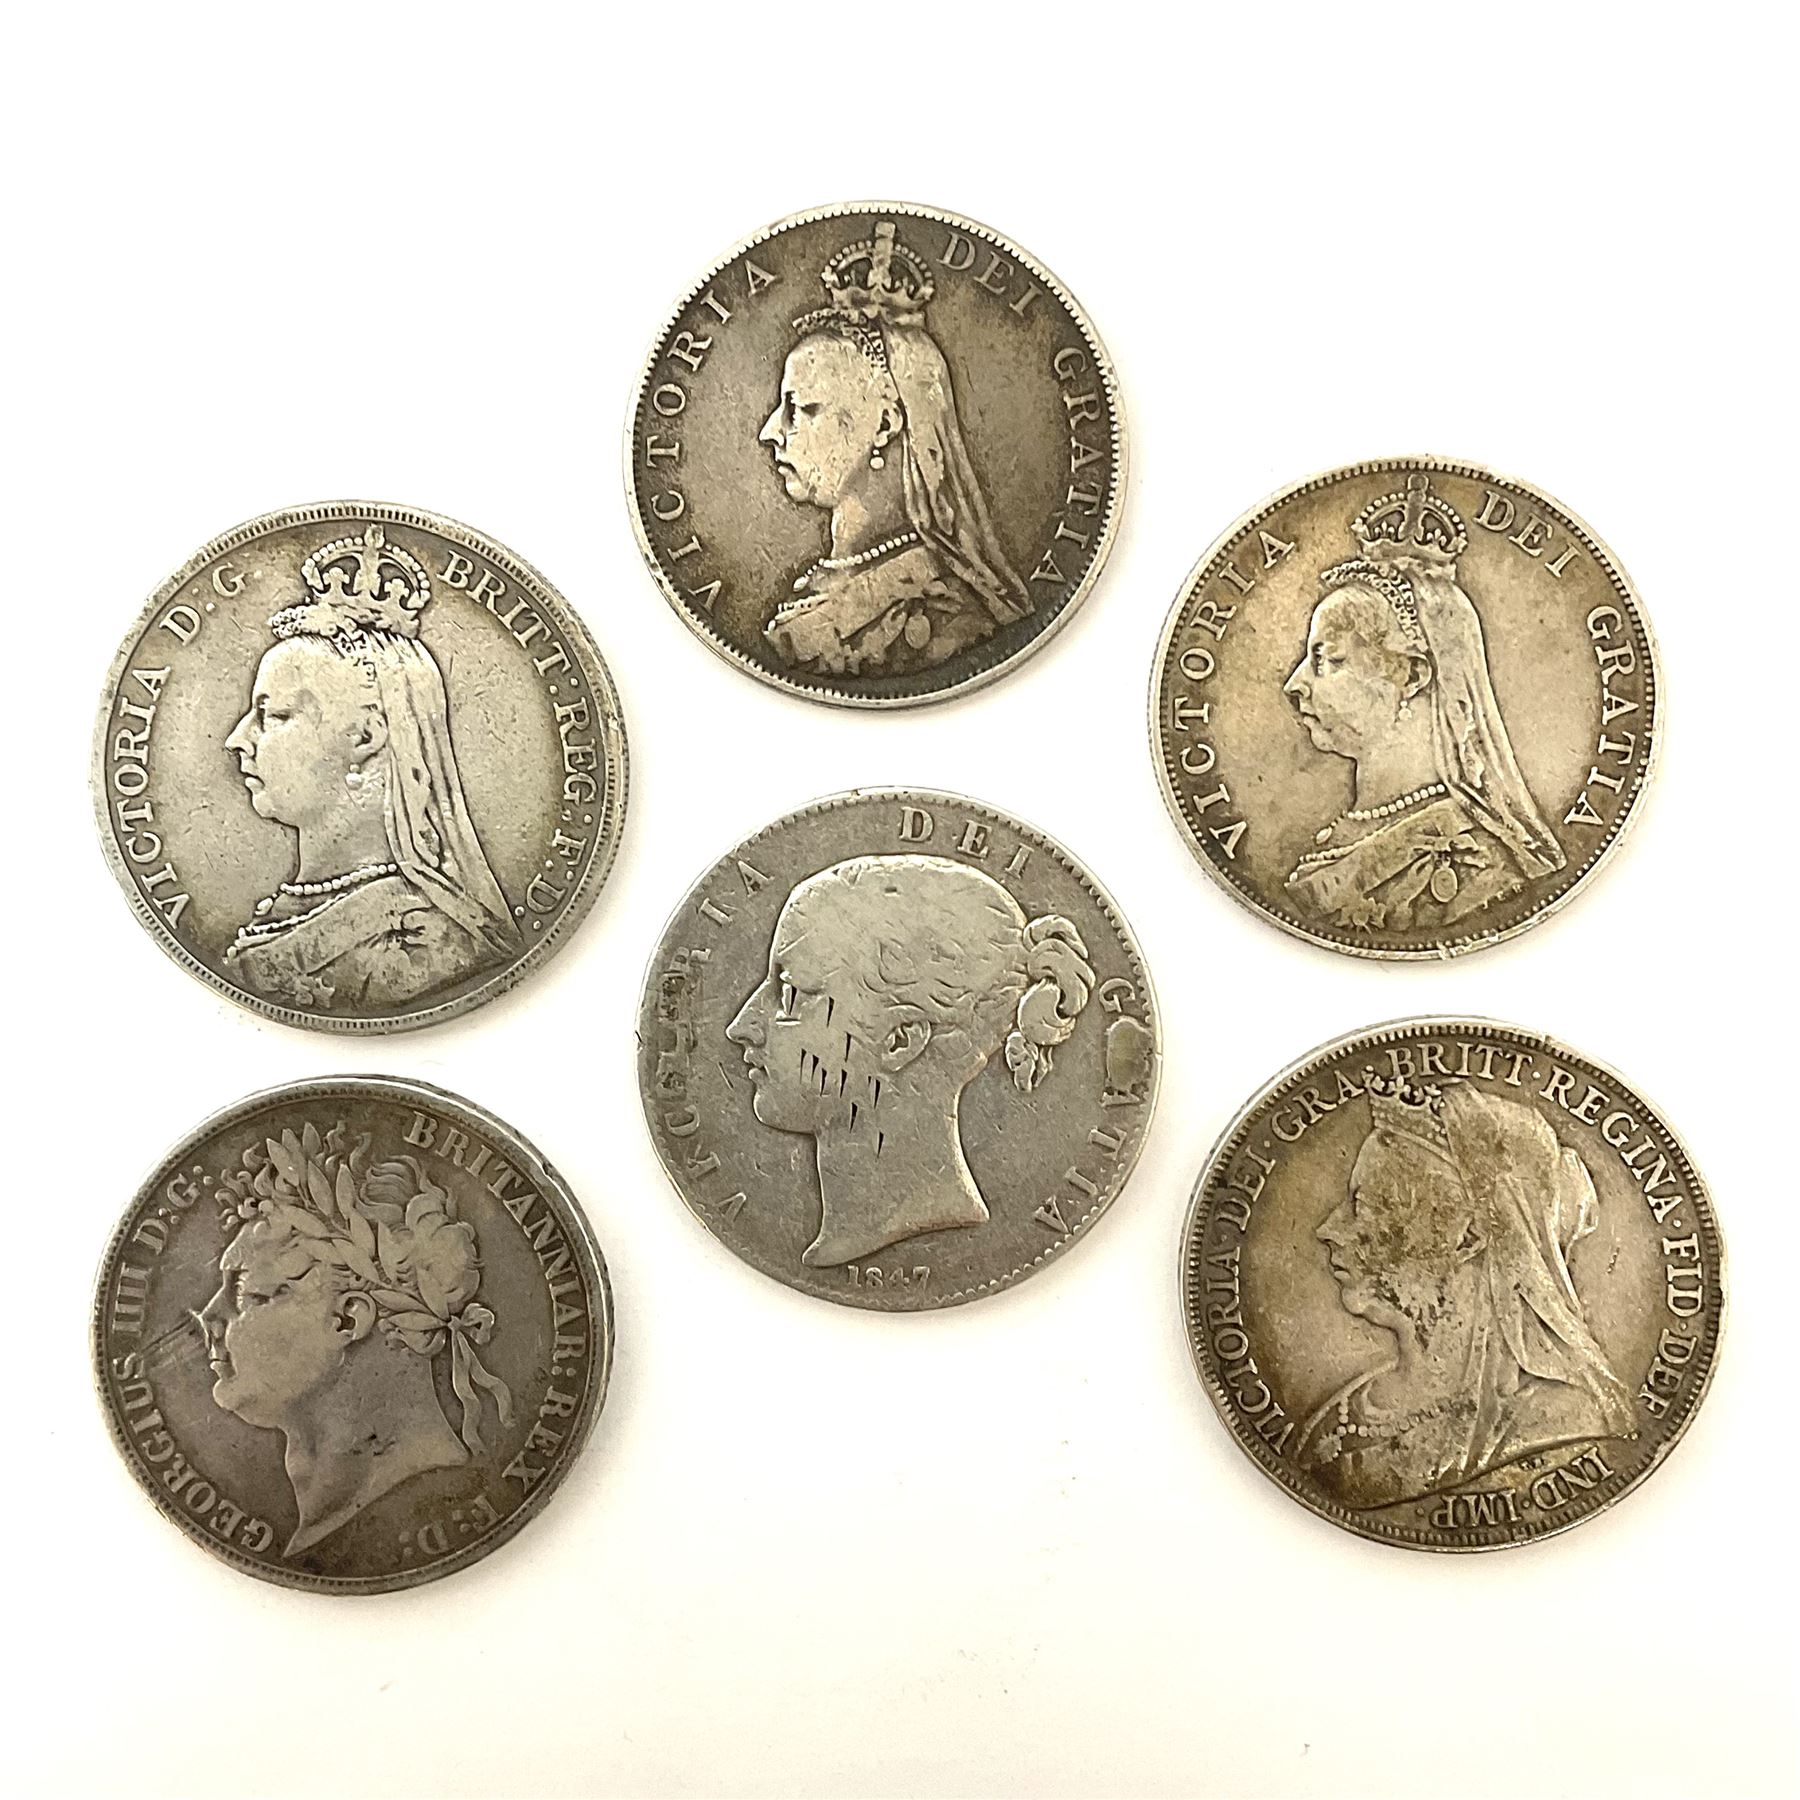 King George IV 1821 crown coin - Image 2 of 4